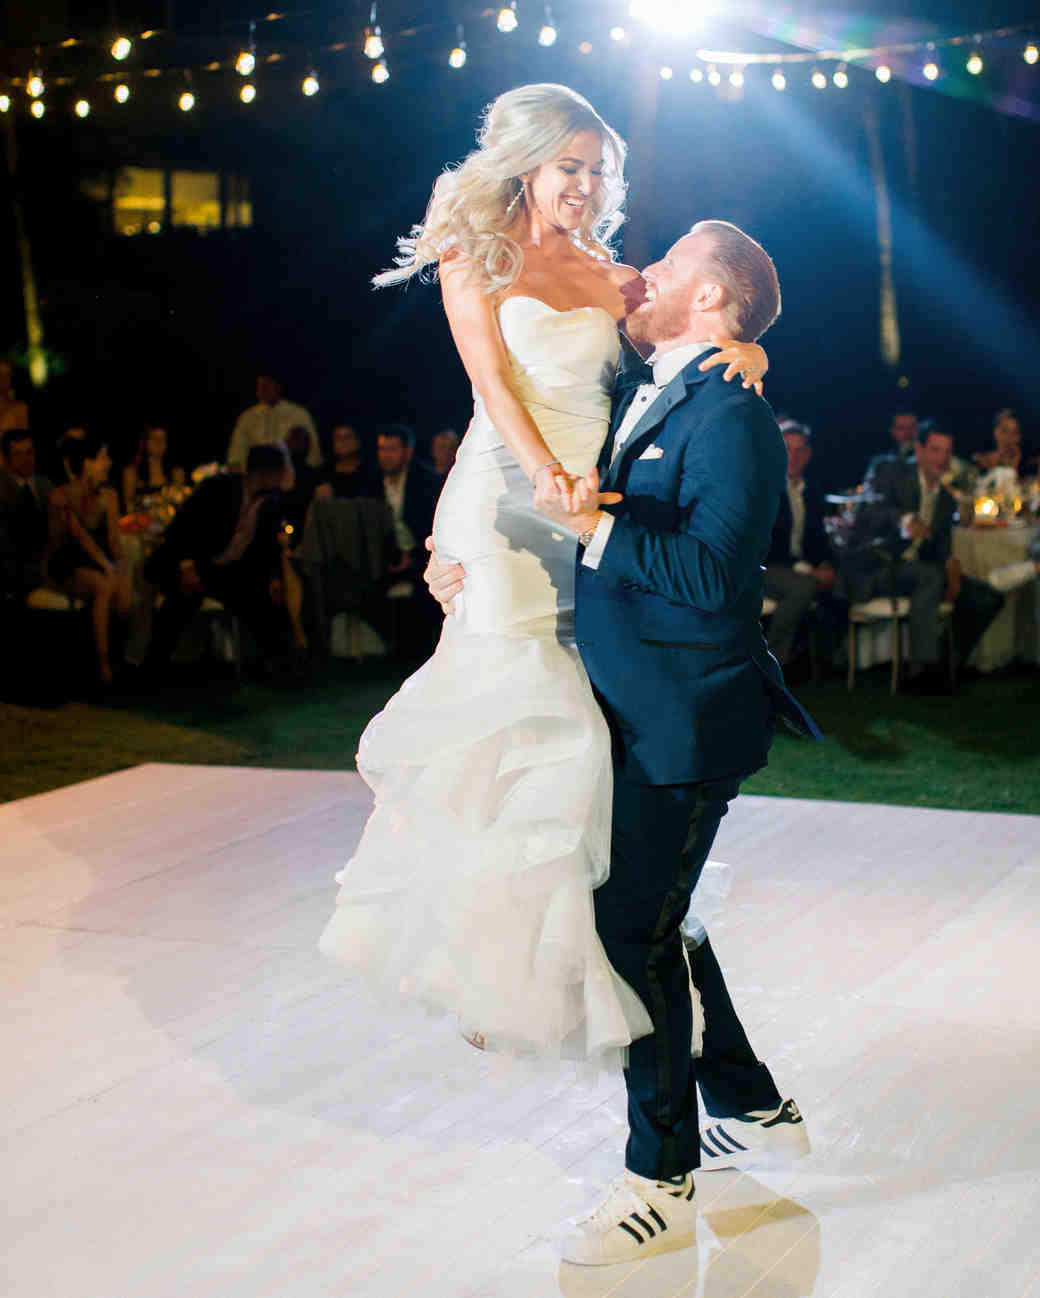 kourtney justin wedding mexico first dance couple